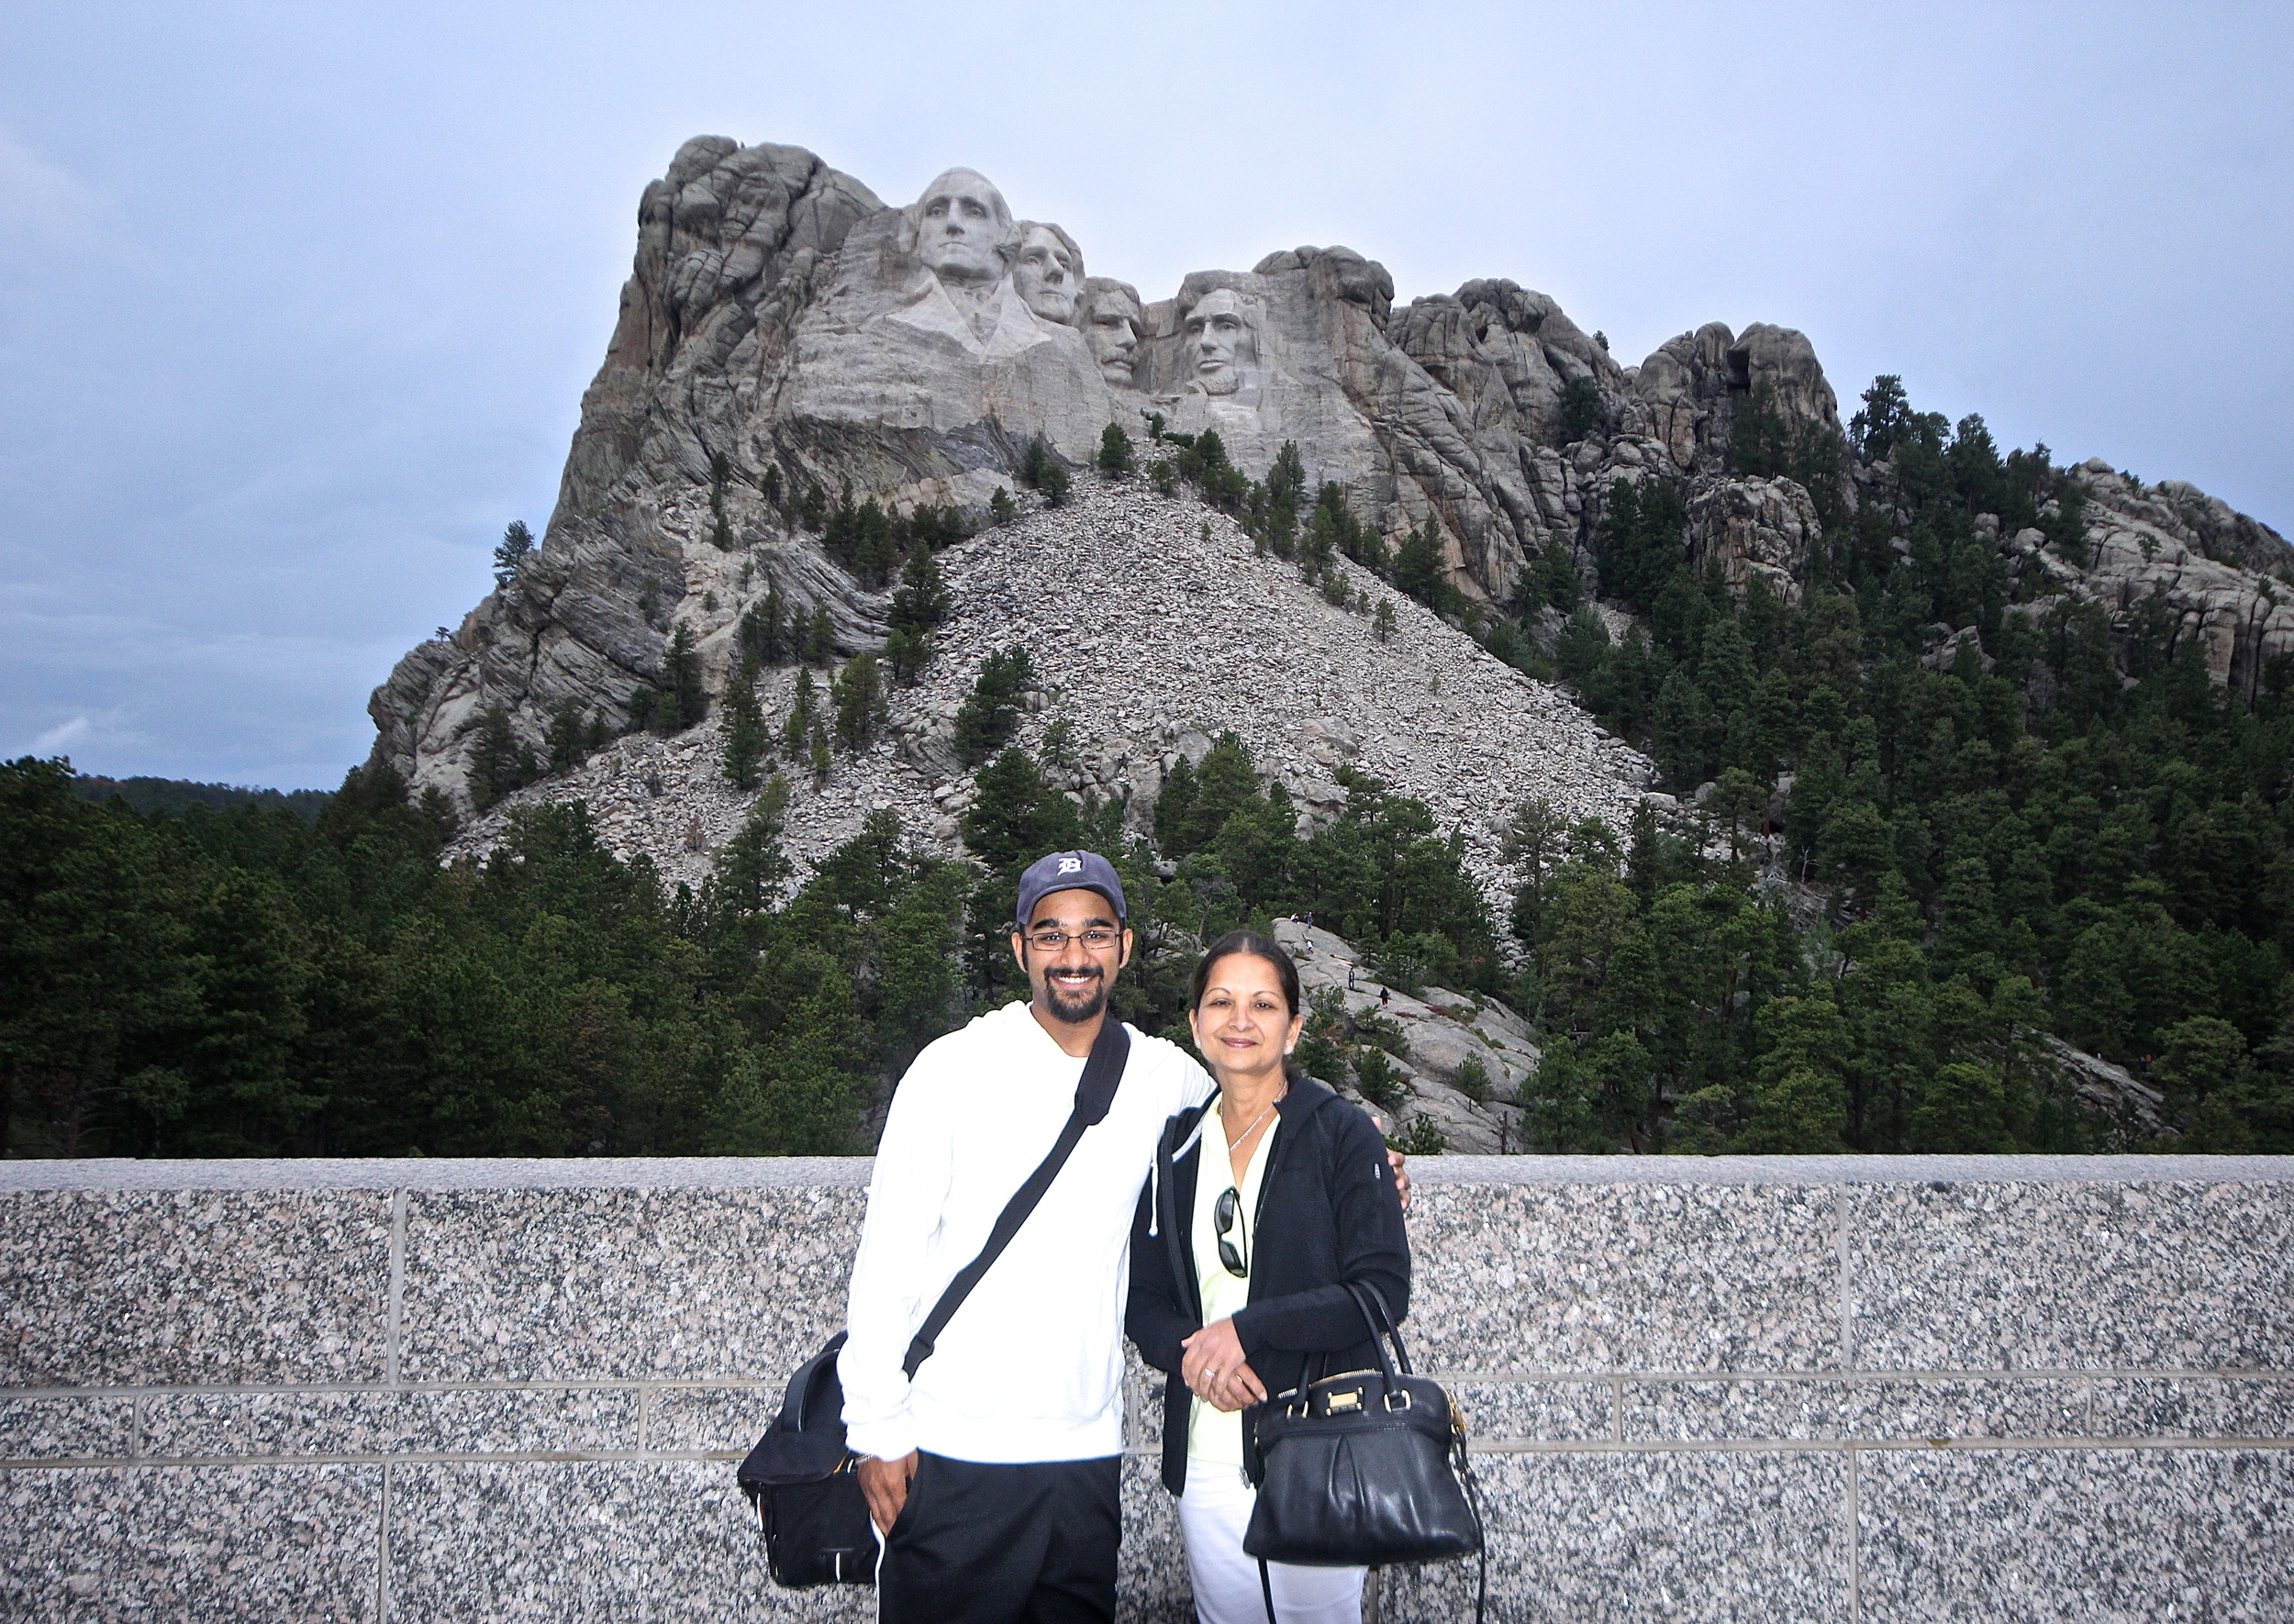 Me and mom at Mount Rushmore